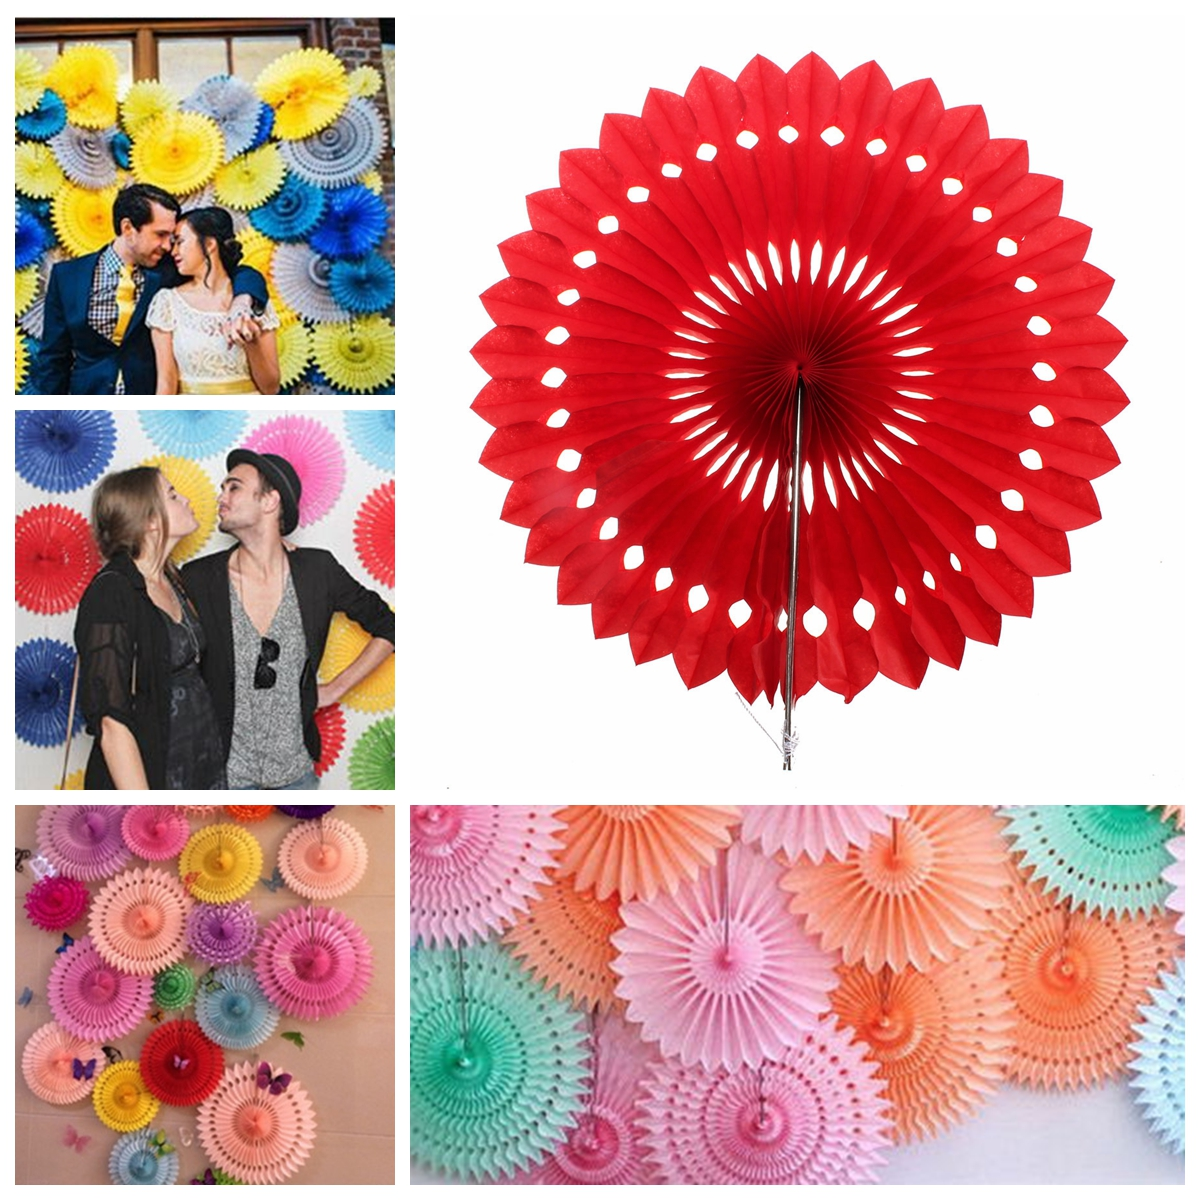 30cm 12'' 1pc Paper Wheel Fan Flower Pine Wheel Hollow Out Paper Wedding Party Decoration